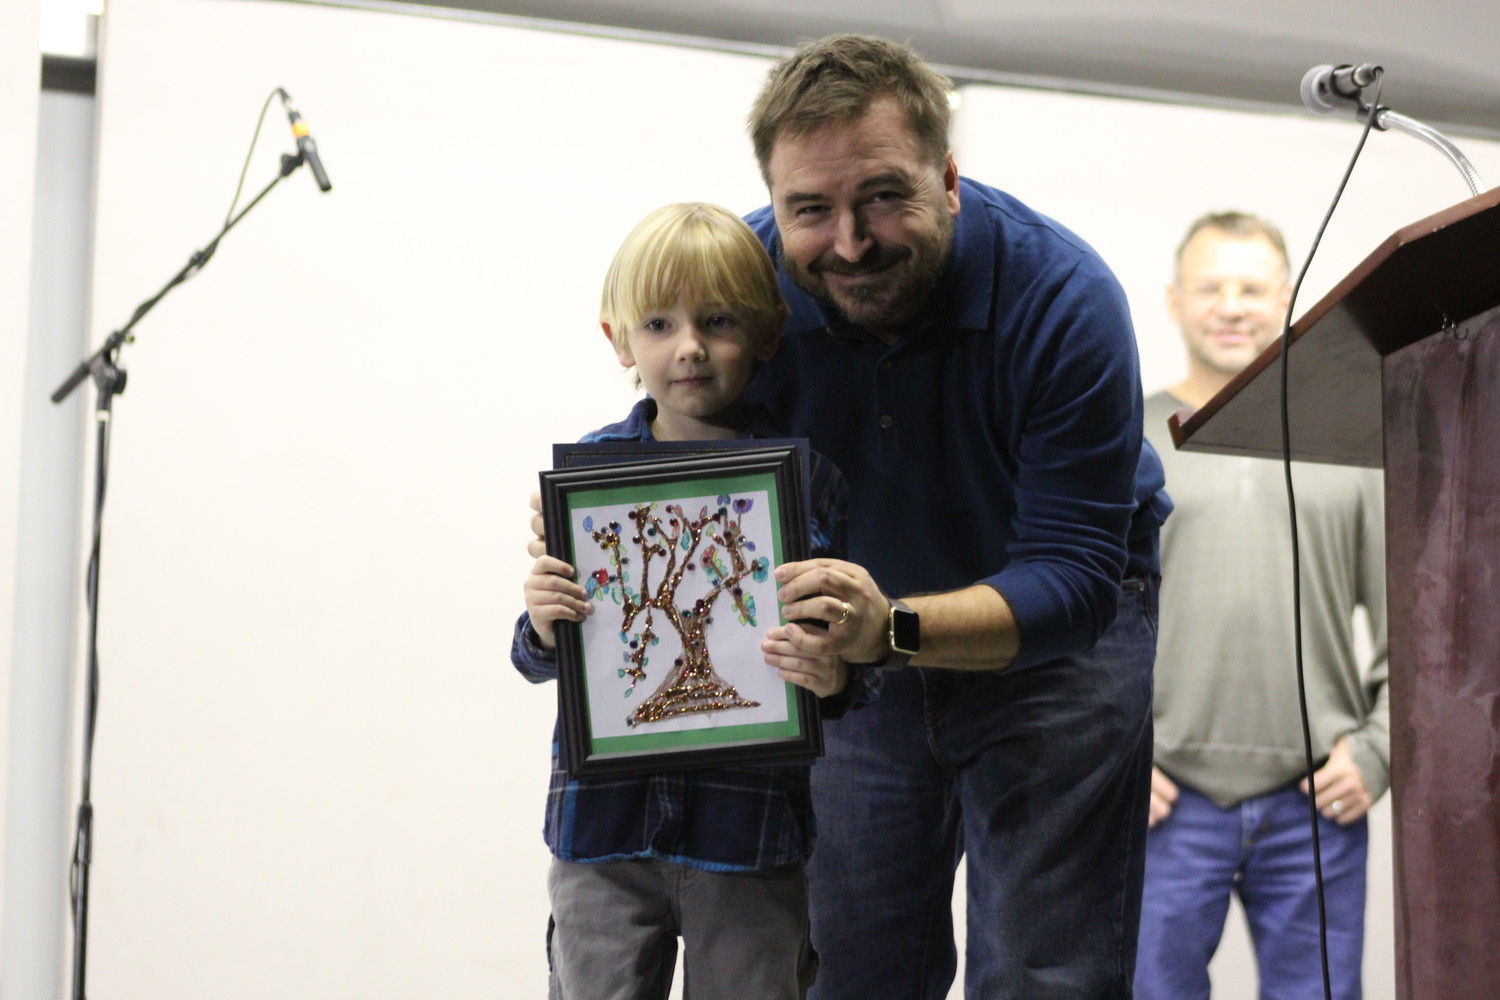 James King, second place winner of the Tree Coloring Contest poses with Cedar Park Mayor Matt Powell.